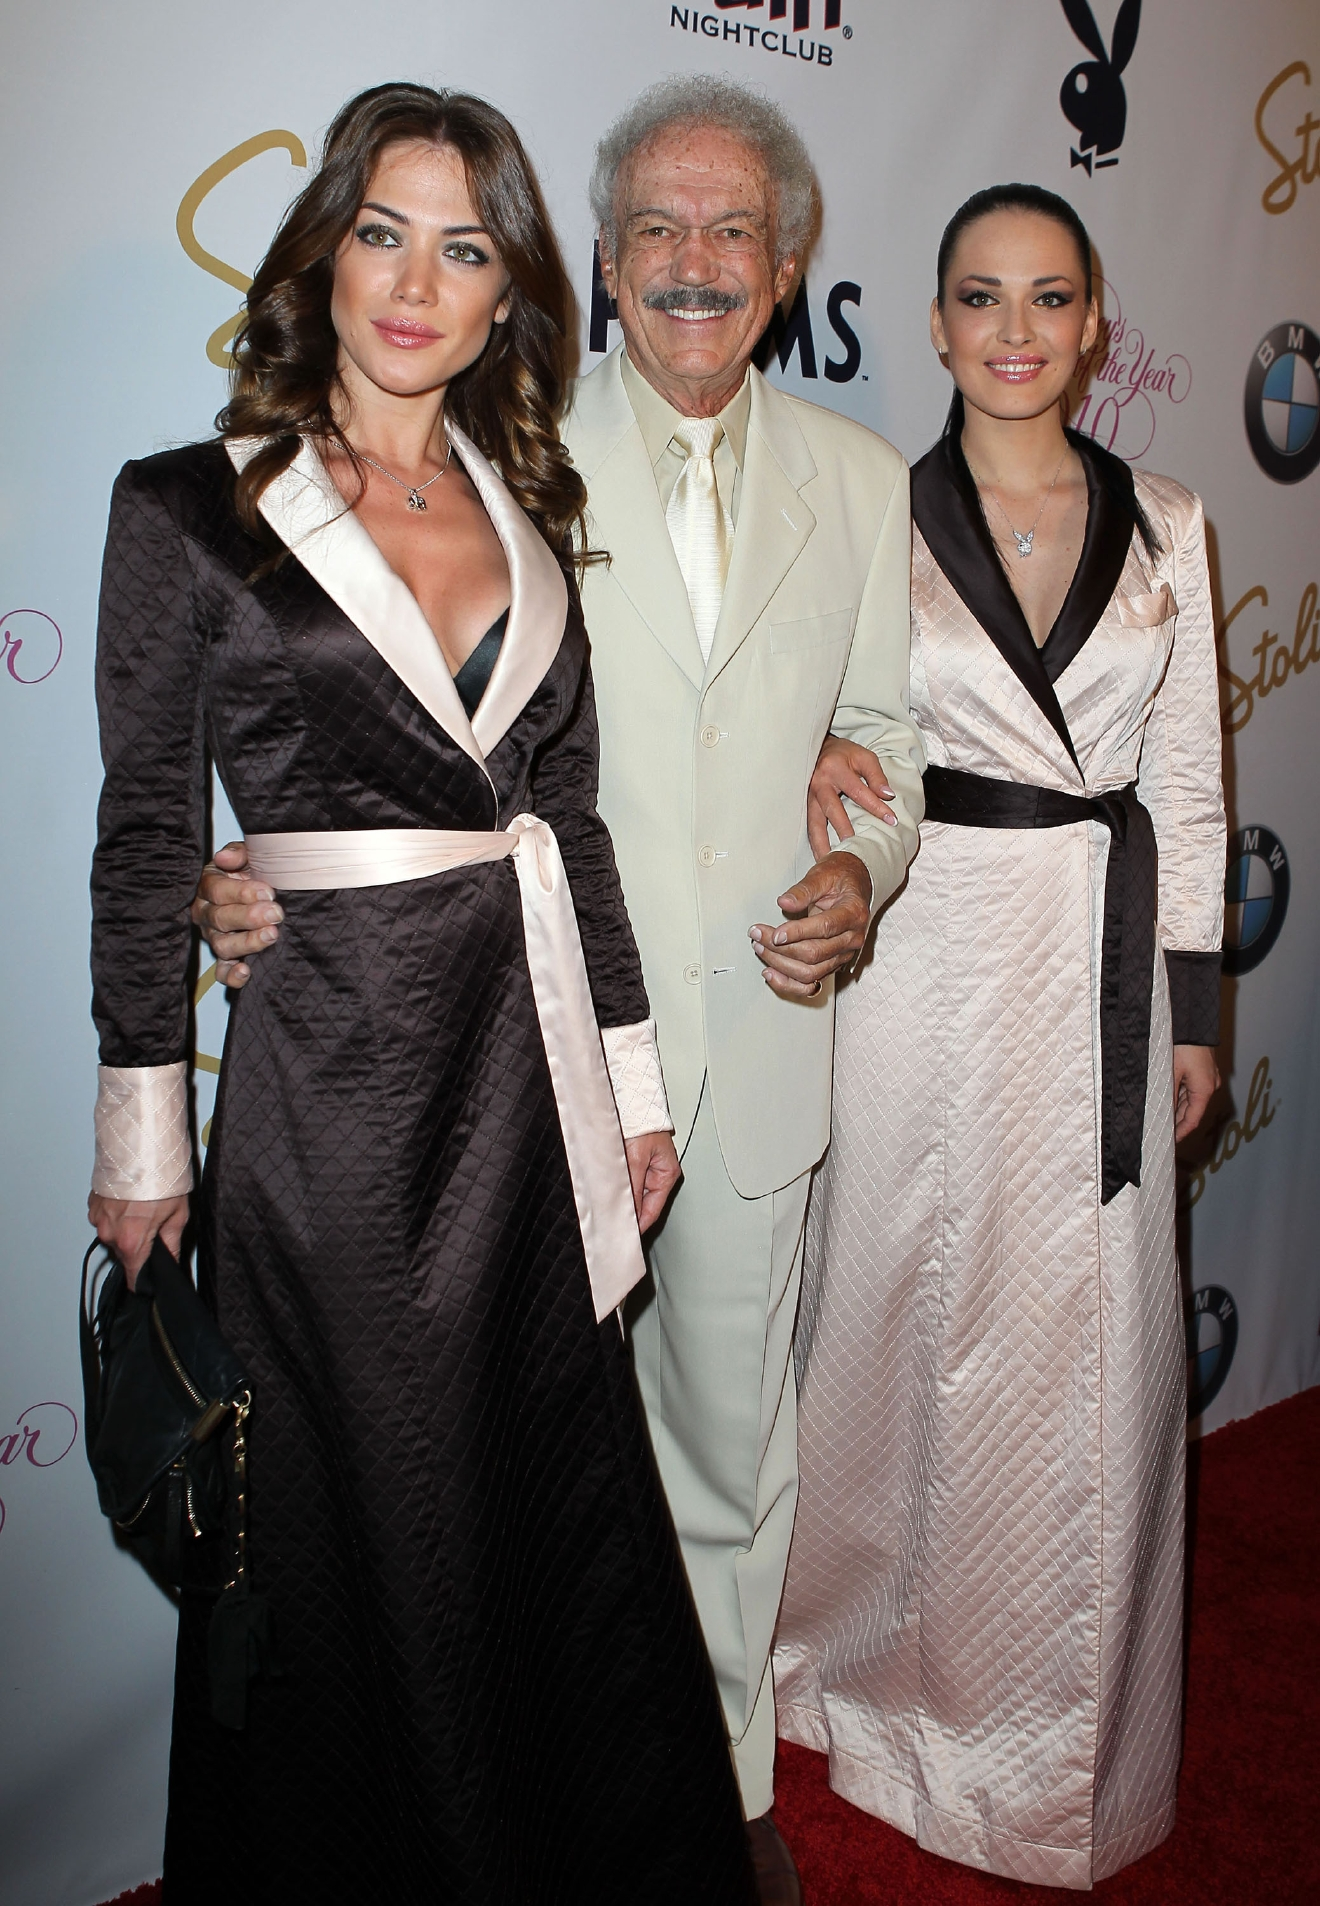 Keith Hefner and Nikita                  2010 Playmate of The Year announcement  at The Palms Hotel & Casino                  Las Vegas, Nevada - 15.05.10                                    Featuring: Keith Hefner and Nikita                  Where: United States                  When: 15 May 2010                  Credit: WENN